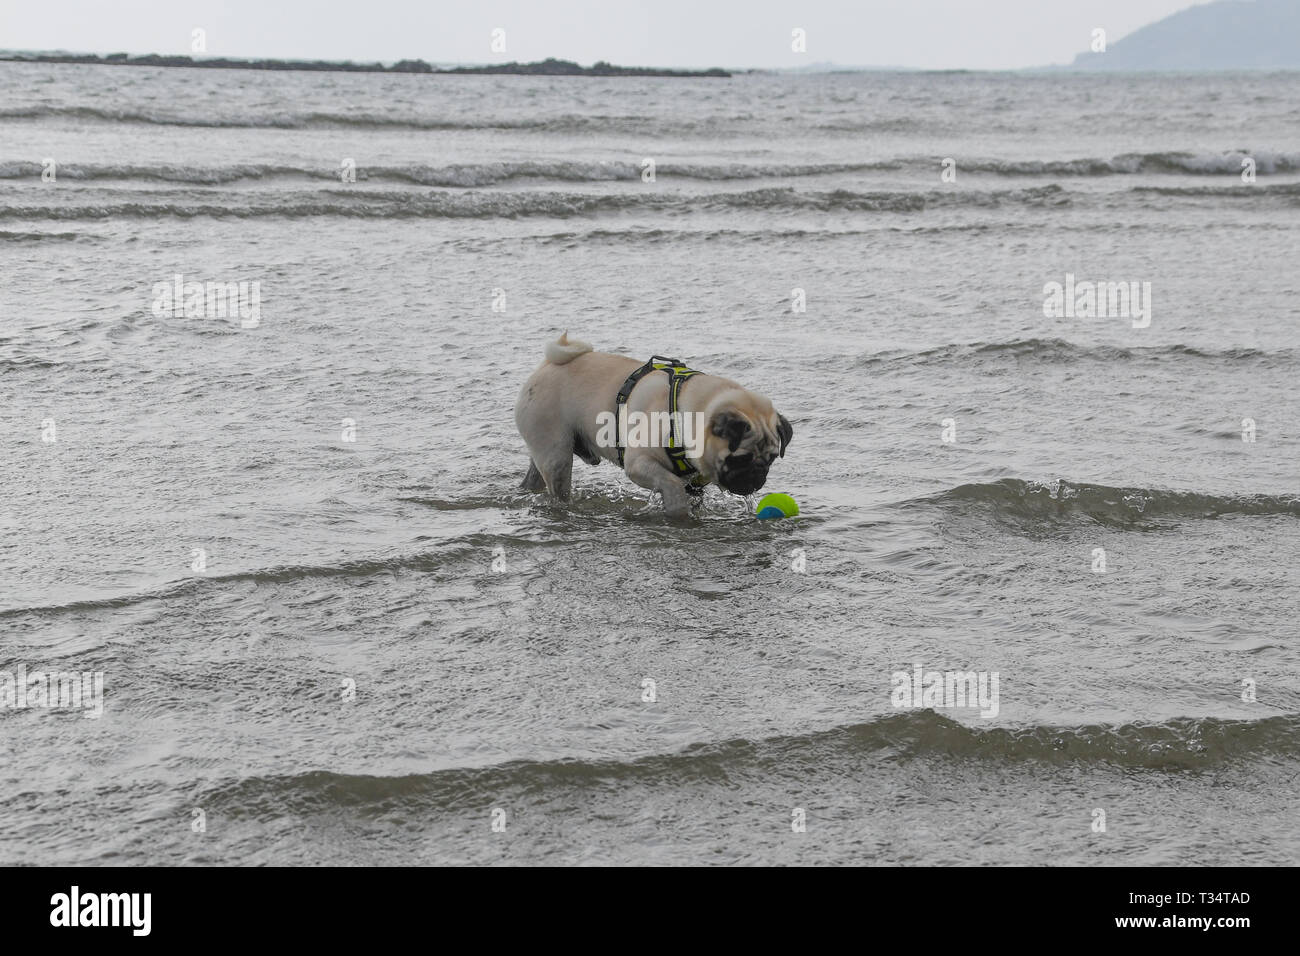 Longrock, Cornwall, UK. 6th Apr, 2019. UK Weather. Titan the Pug pup making the most of the sunny weather, playing in the sea at lunchtime. Credit: Simon Maycock/Alamy Live News Stock Photo